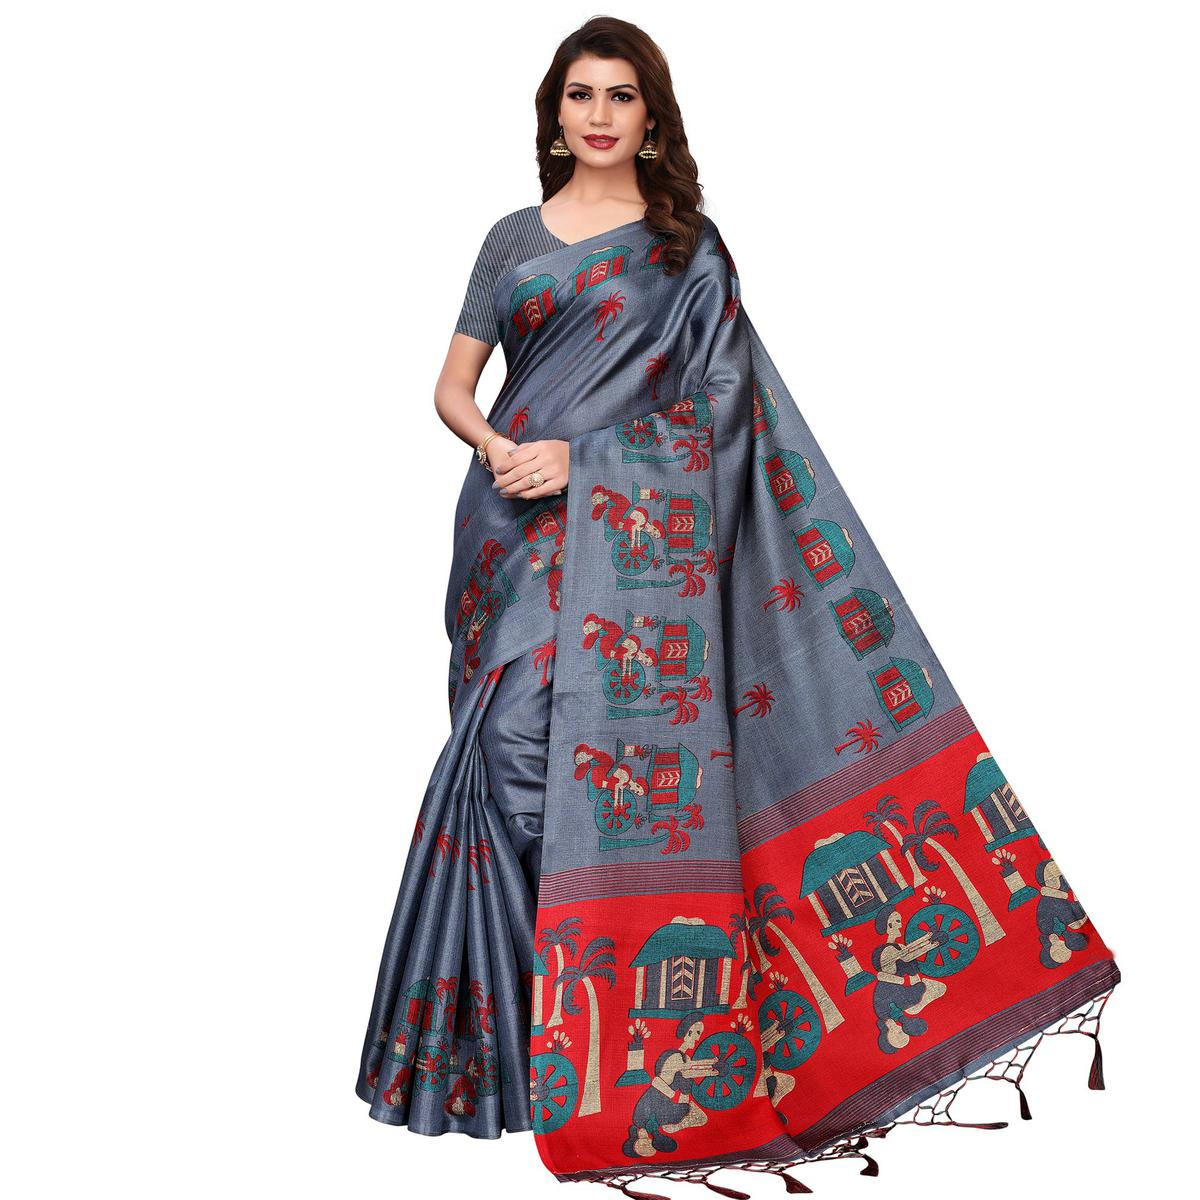 Ravishing Gray Colored Festive Wear Printed Art Silk Saree